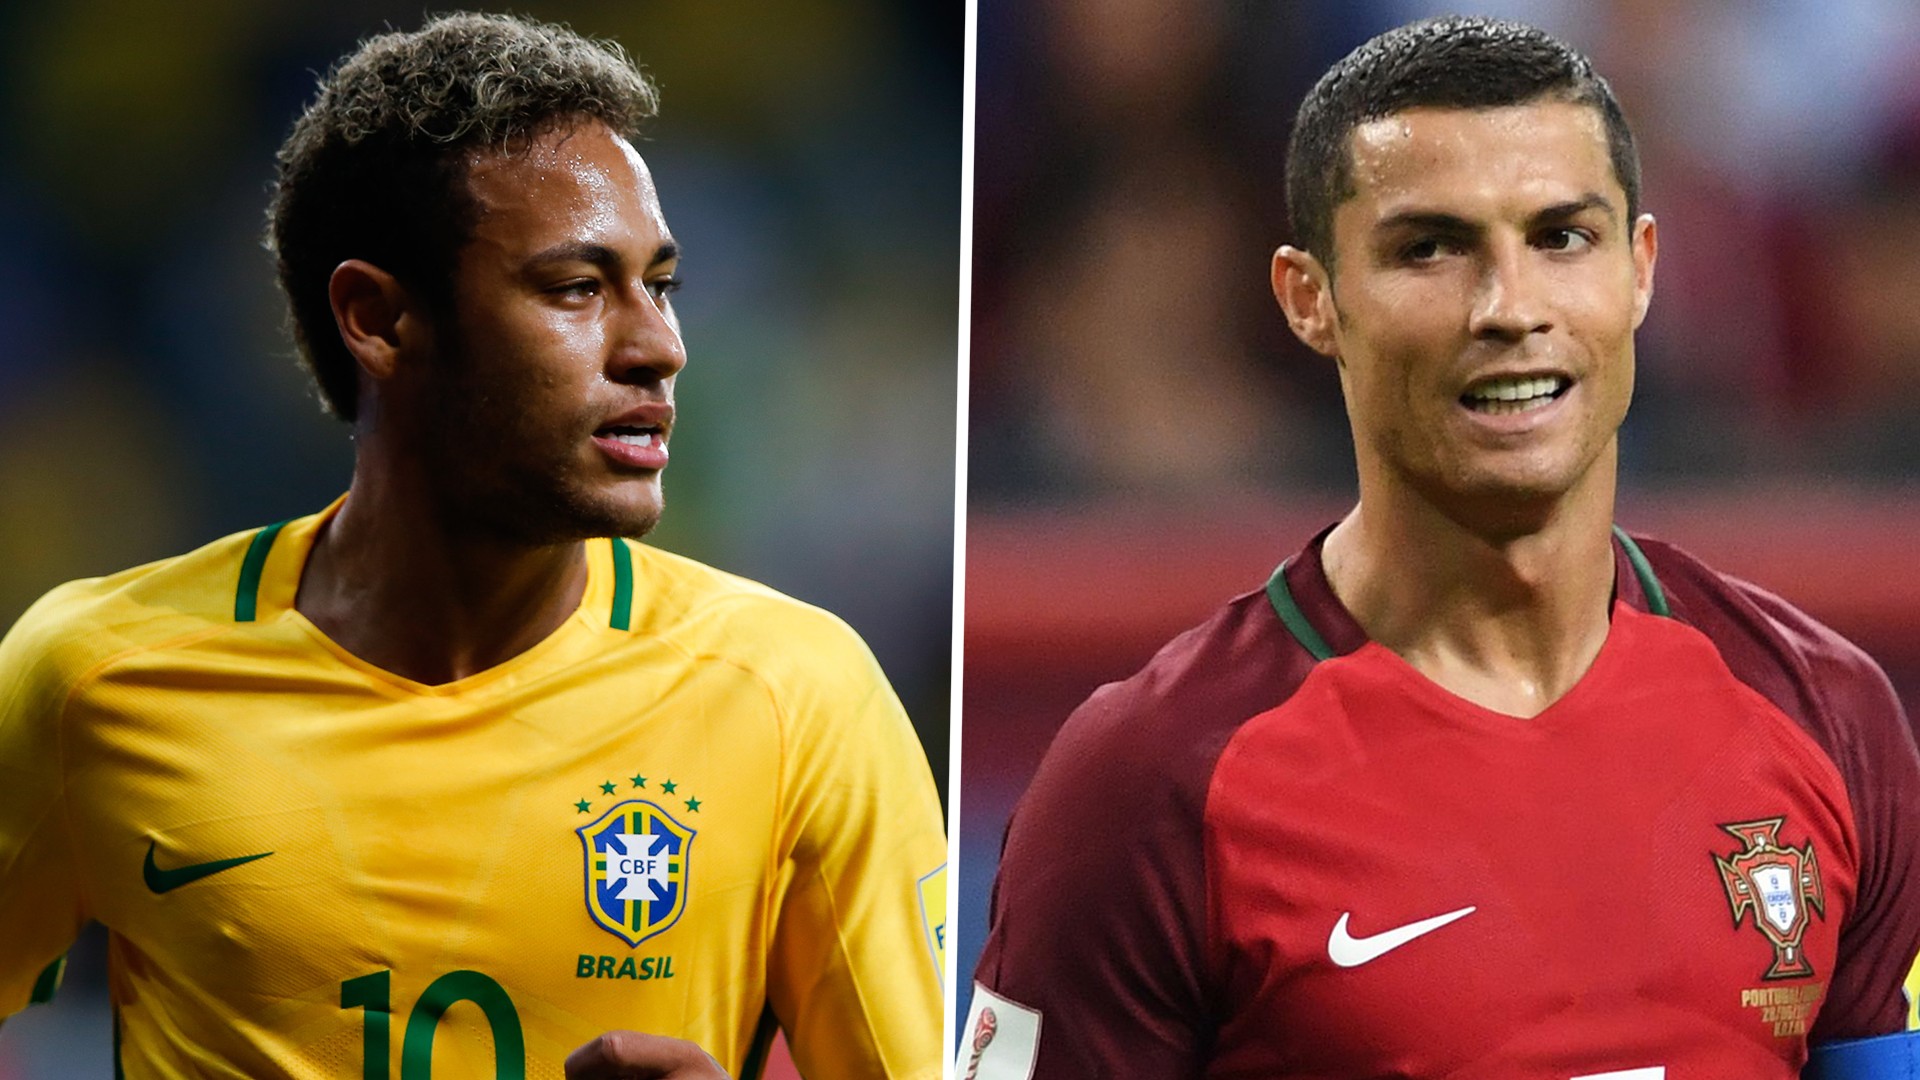 'It would be wonderful for Ronaldo to have Neymar by his side' – Rivaldo backs Juventus move